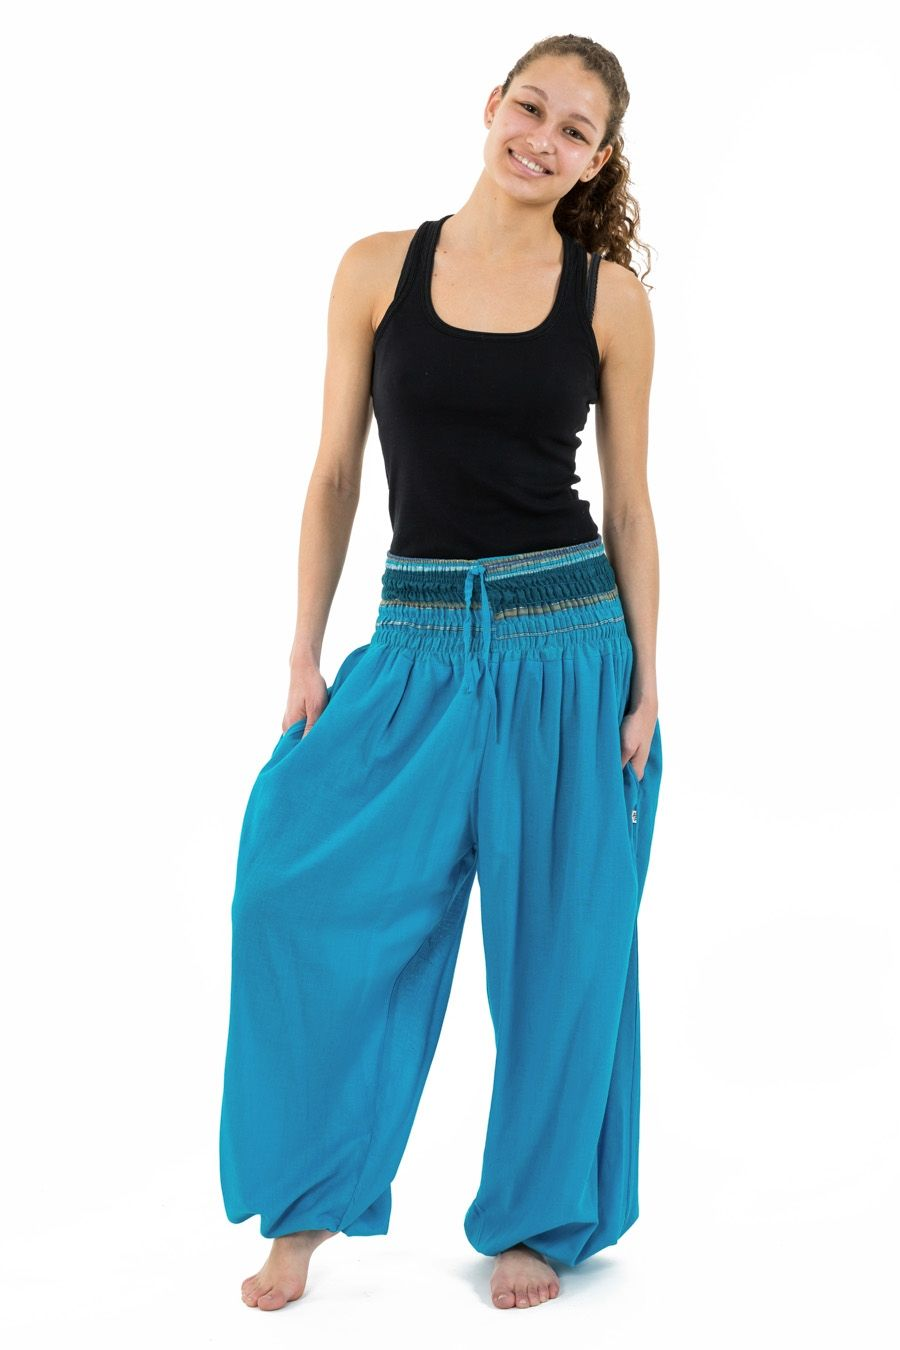 Sarouel turquoise Style baba cool chic